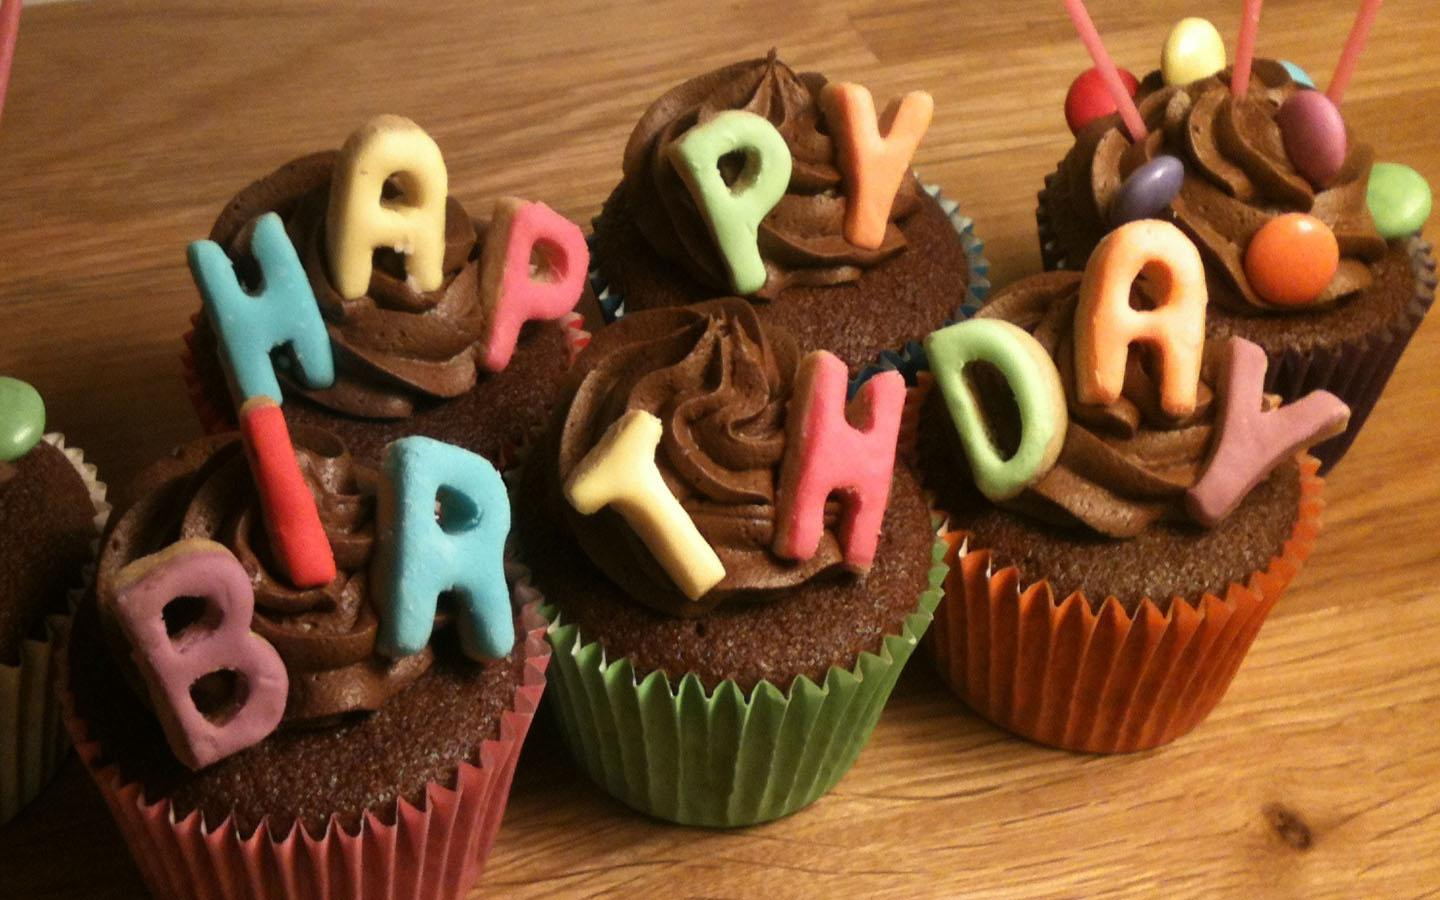 Happy Birthday Wallpaper 101 APK Download Android